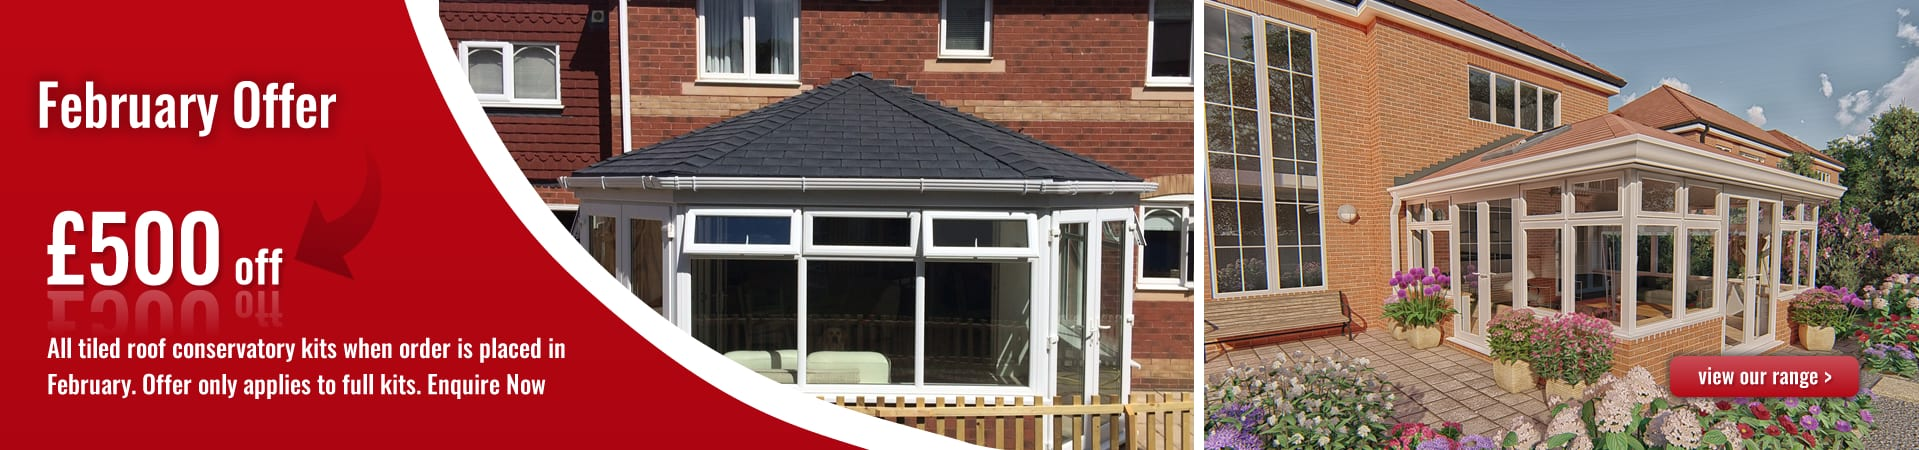 tiled roof conservatories february 2021 offer banner